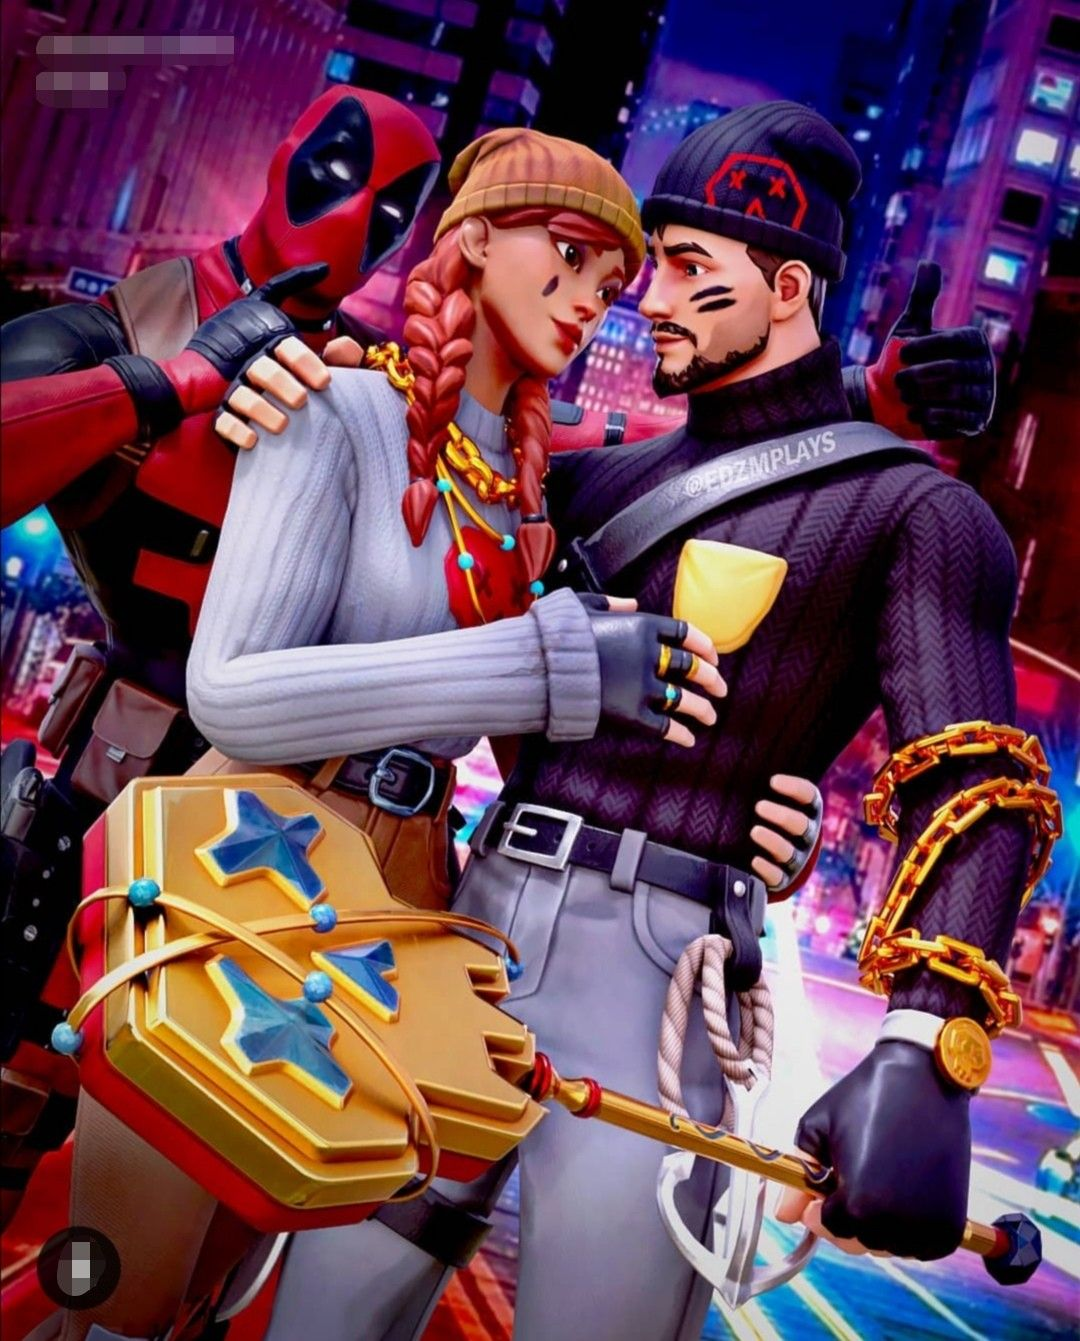 Fortnite Love Skins In 2020 Gamer Pics Cute Couple Pictures Best Gaming Wallpapers